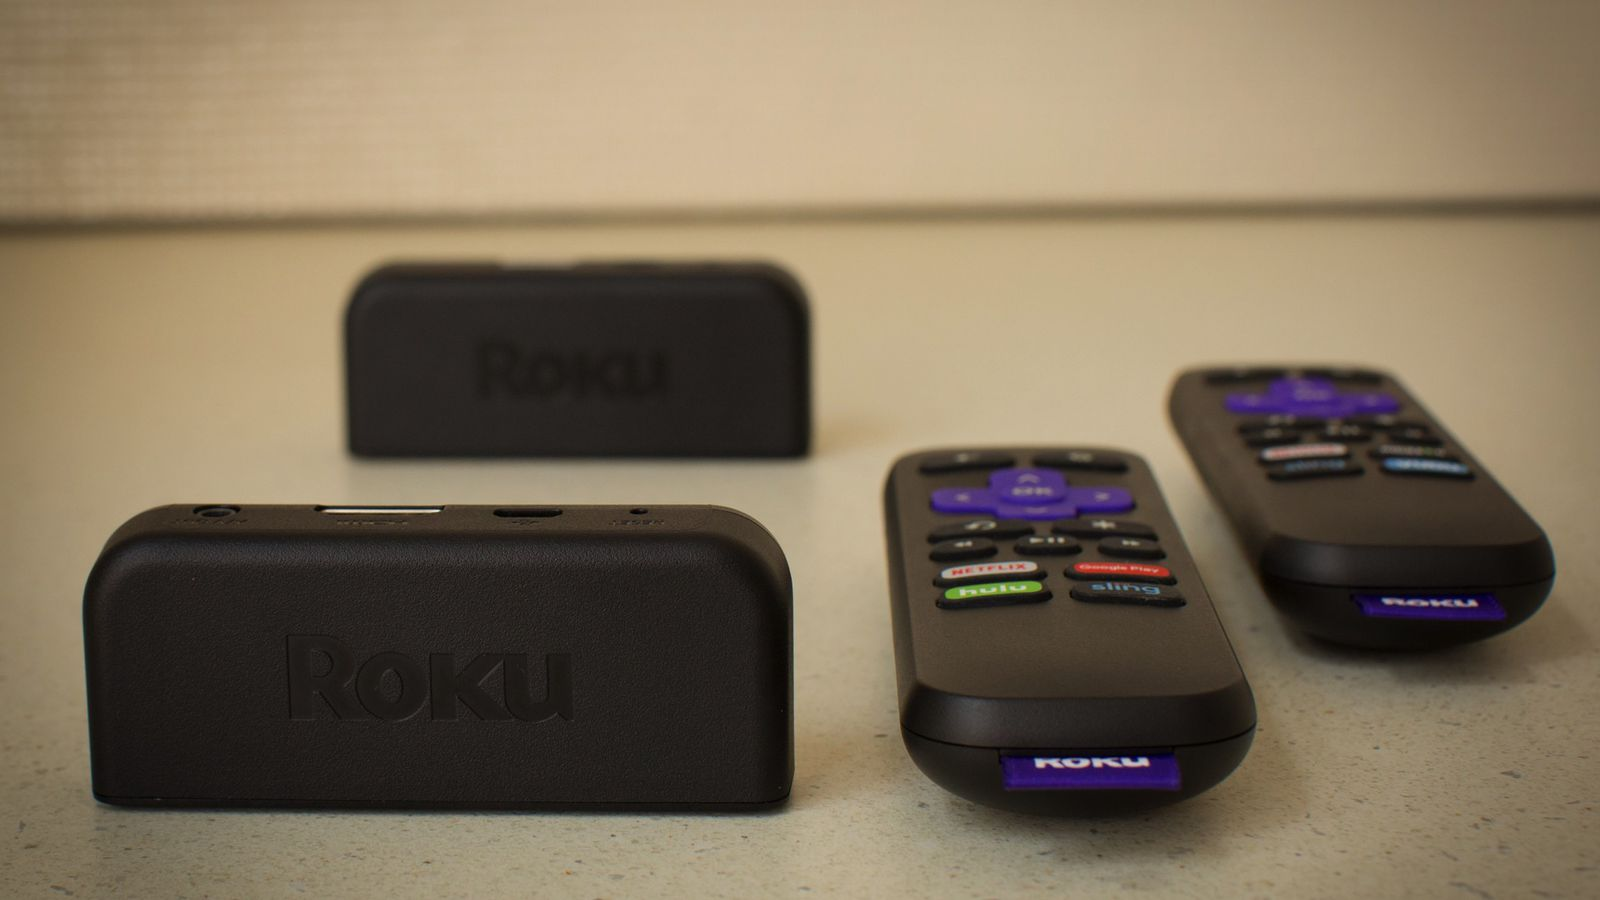 Roku S New 30 Express Box Is The Cheapest Roku Yet The